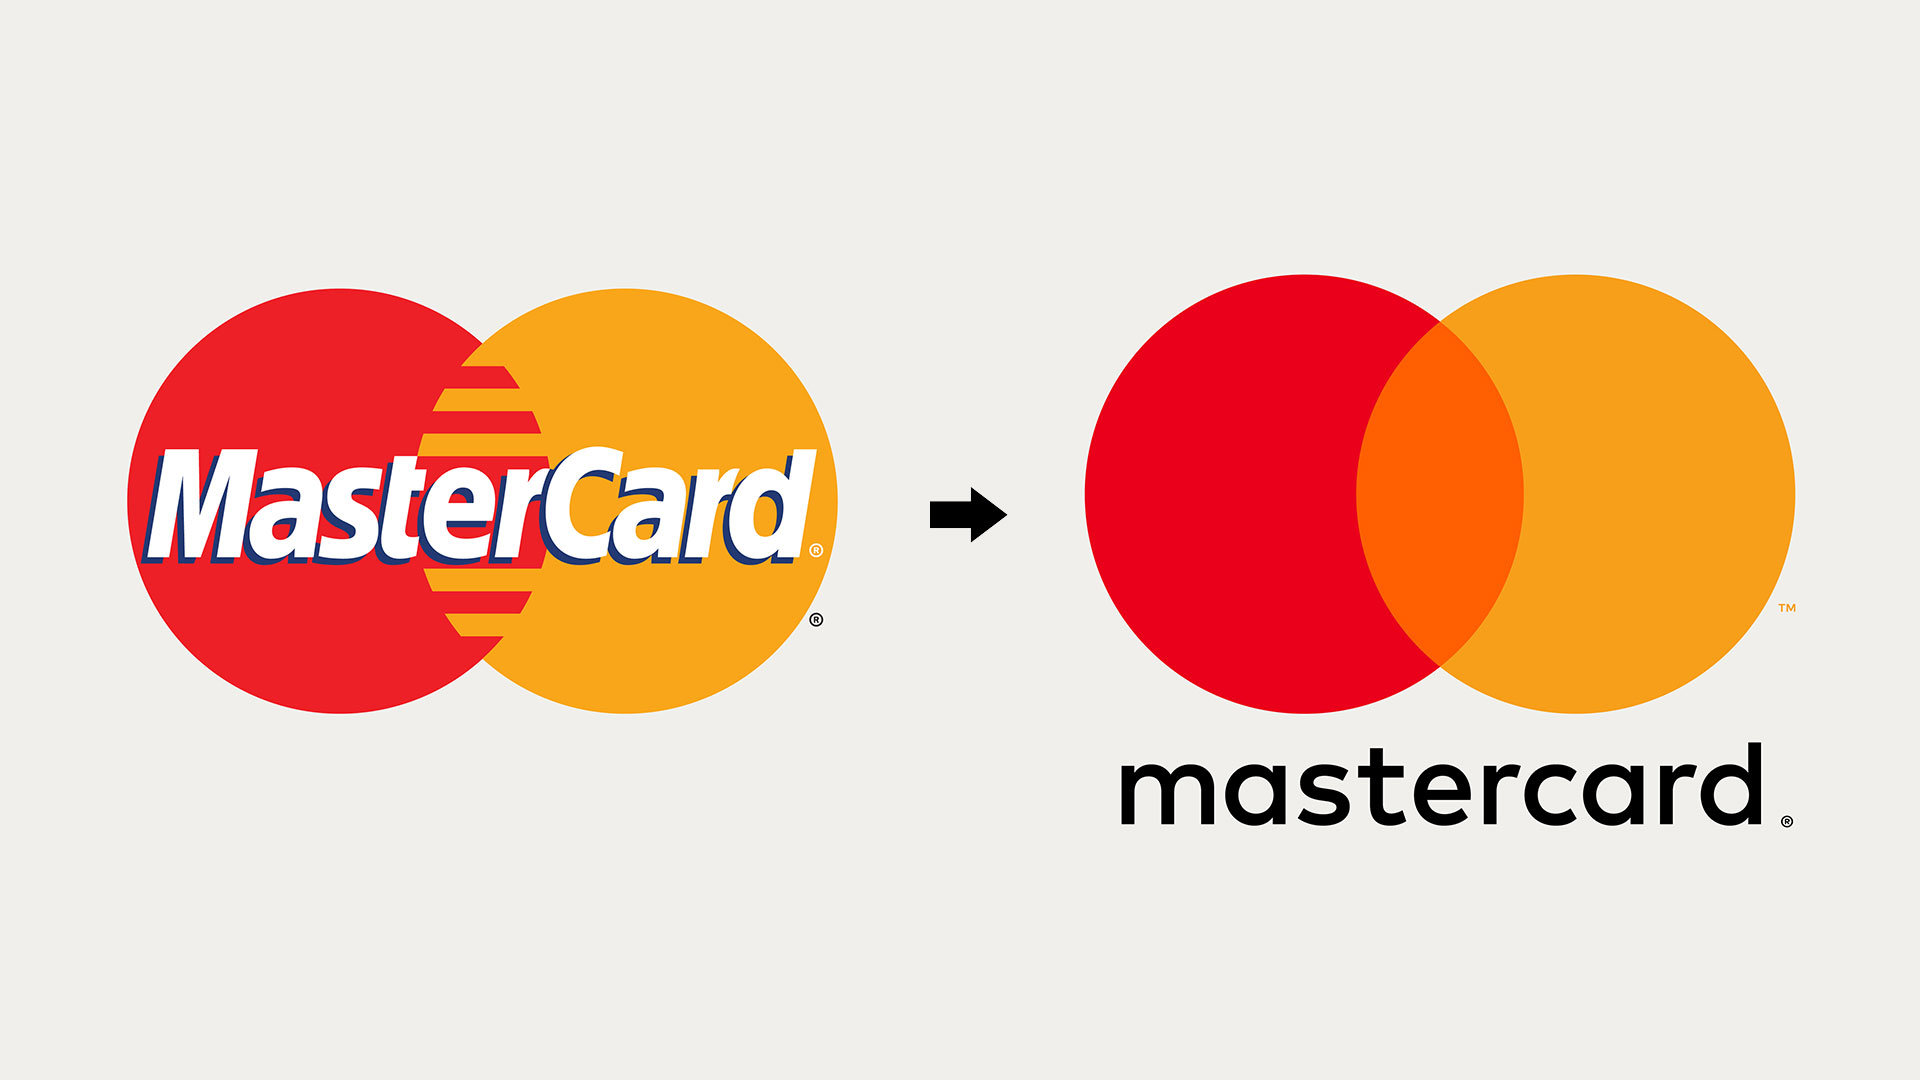 Mastercard Explains Its New Logo Both Whats New And What Isnt